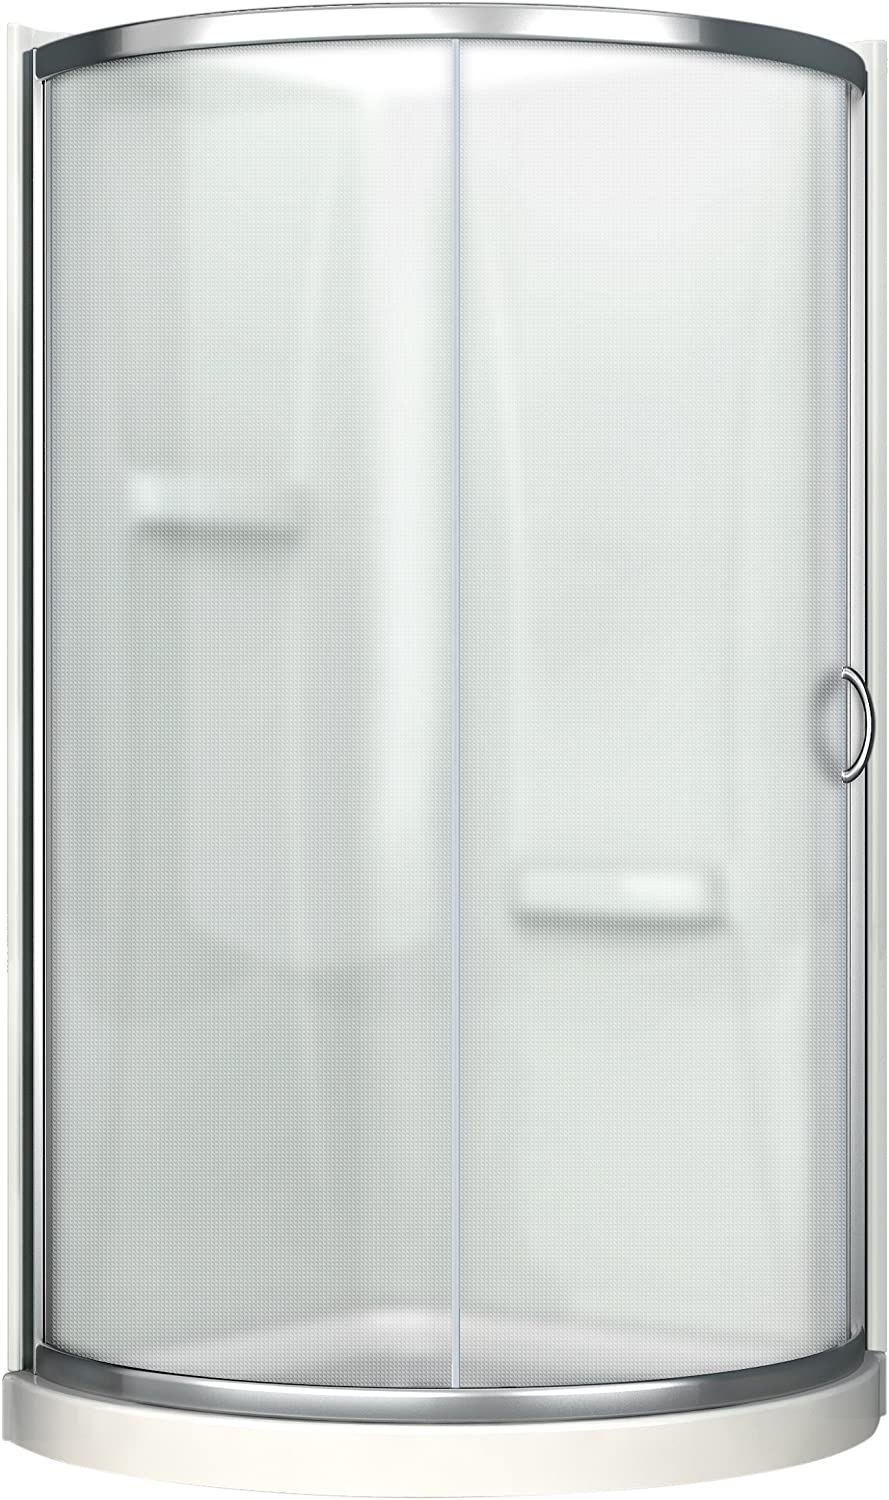 ove shower doors reviews